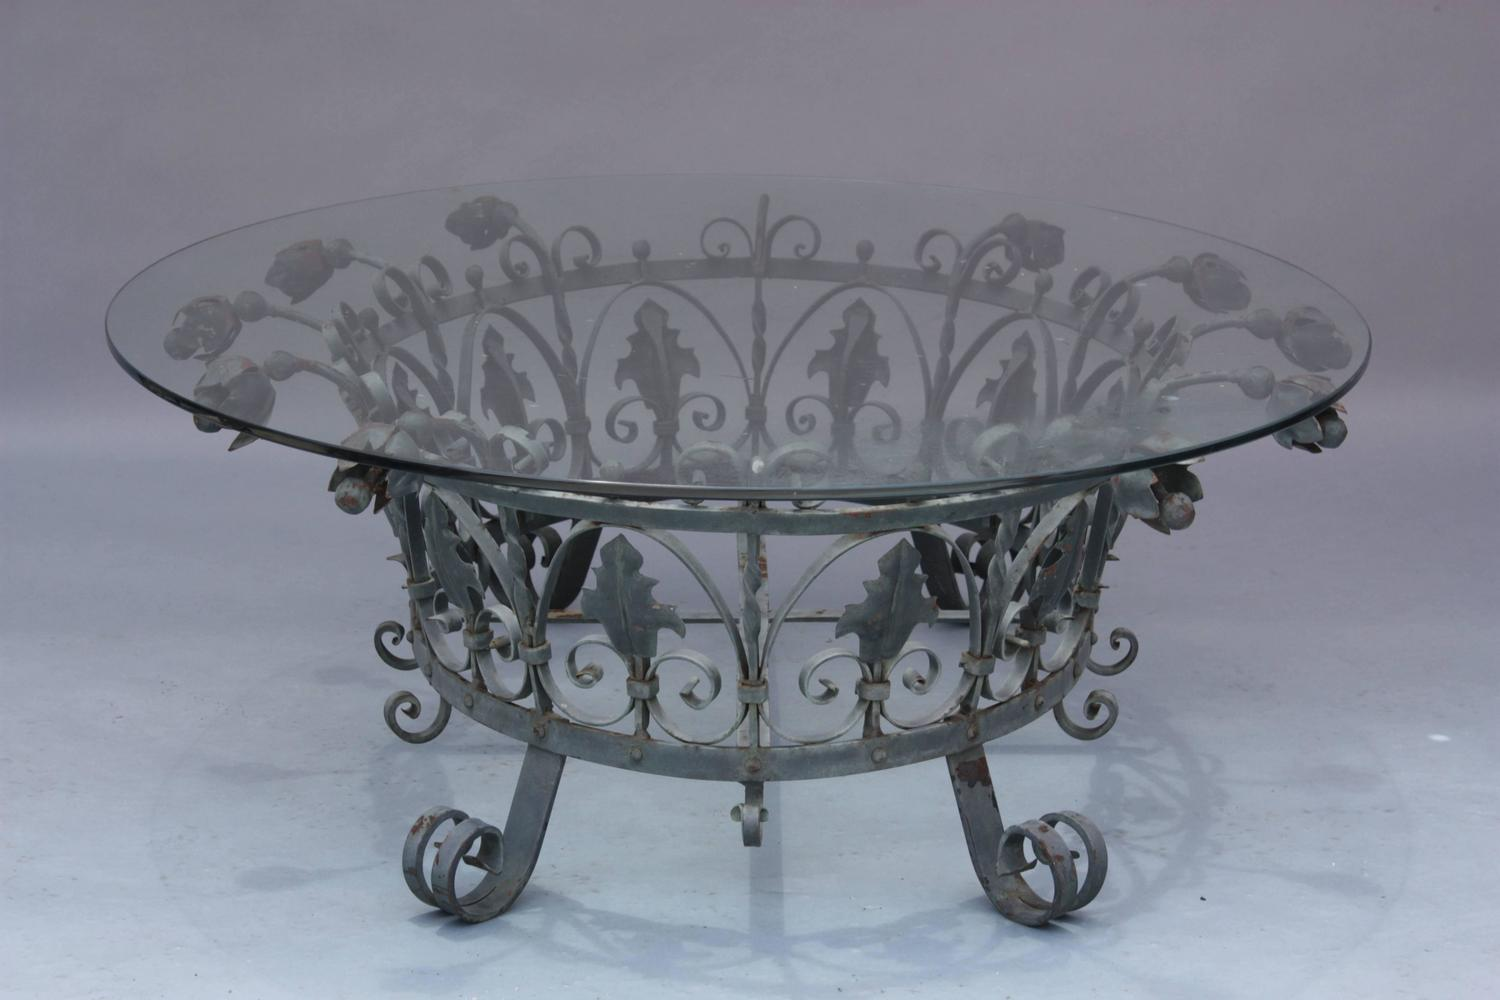 Hard To Find Spanish Revival Iron And Glass Coffee Table At 1stdibs